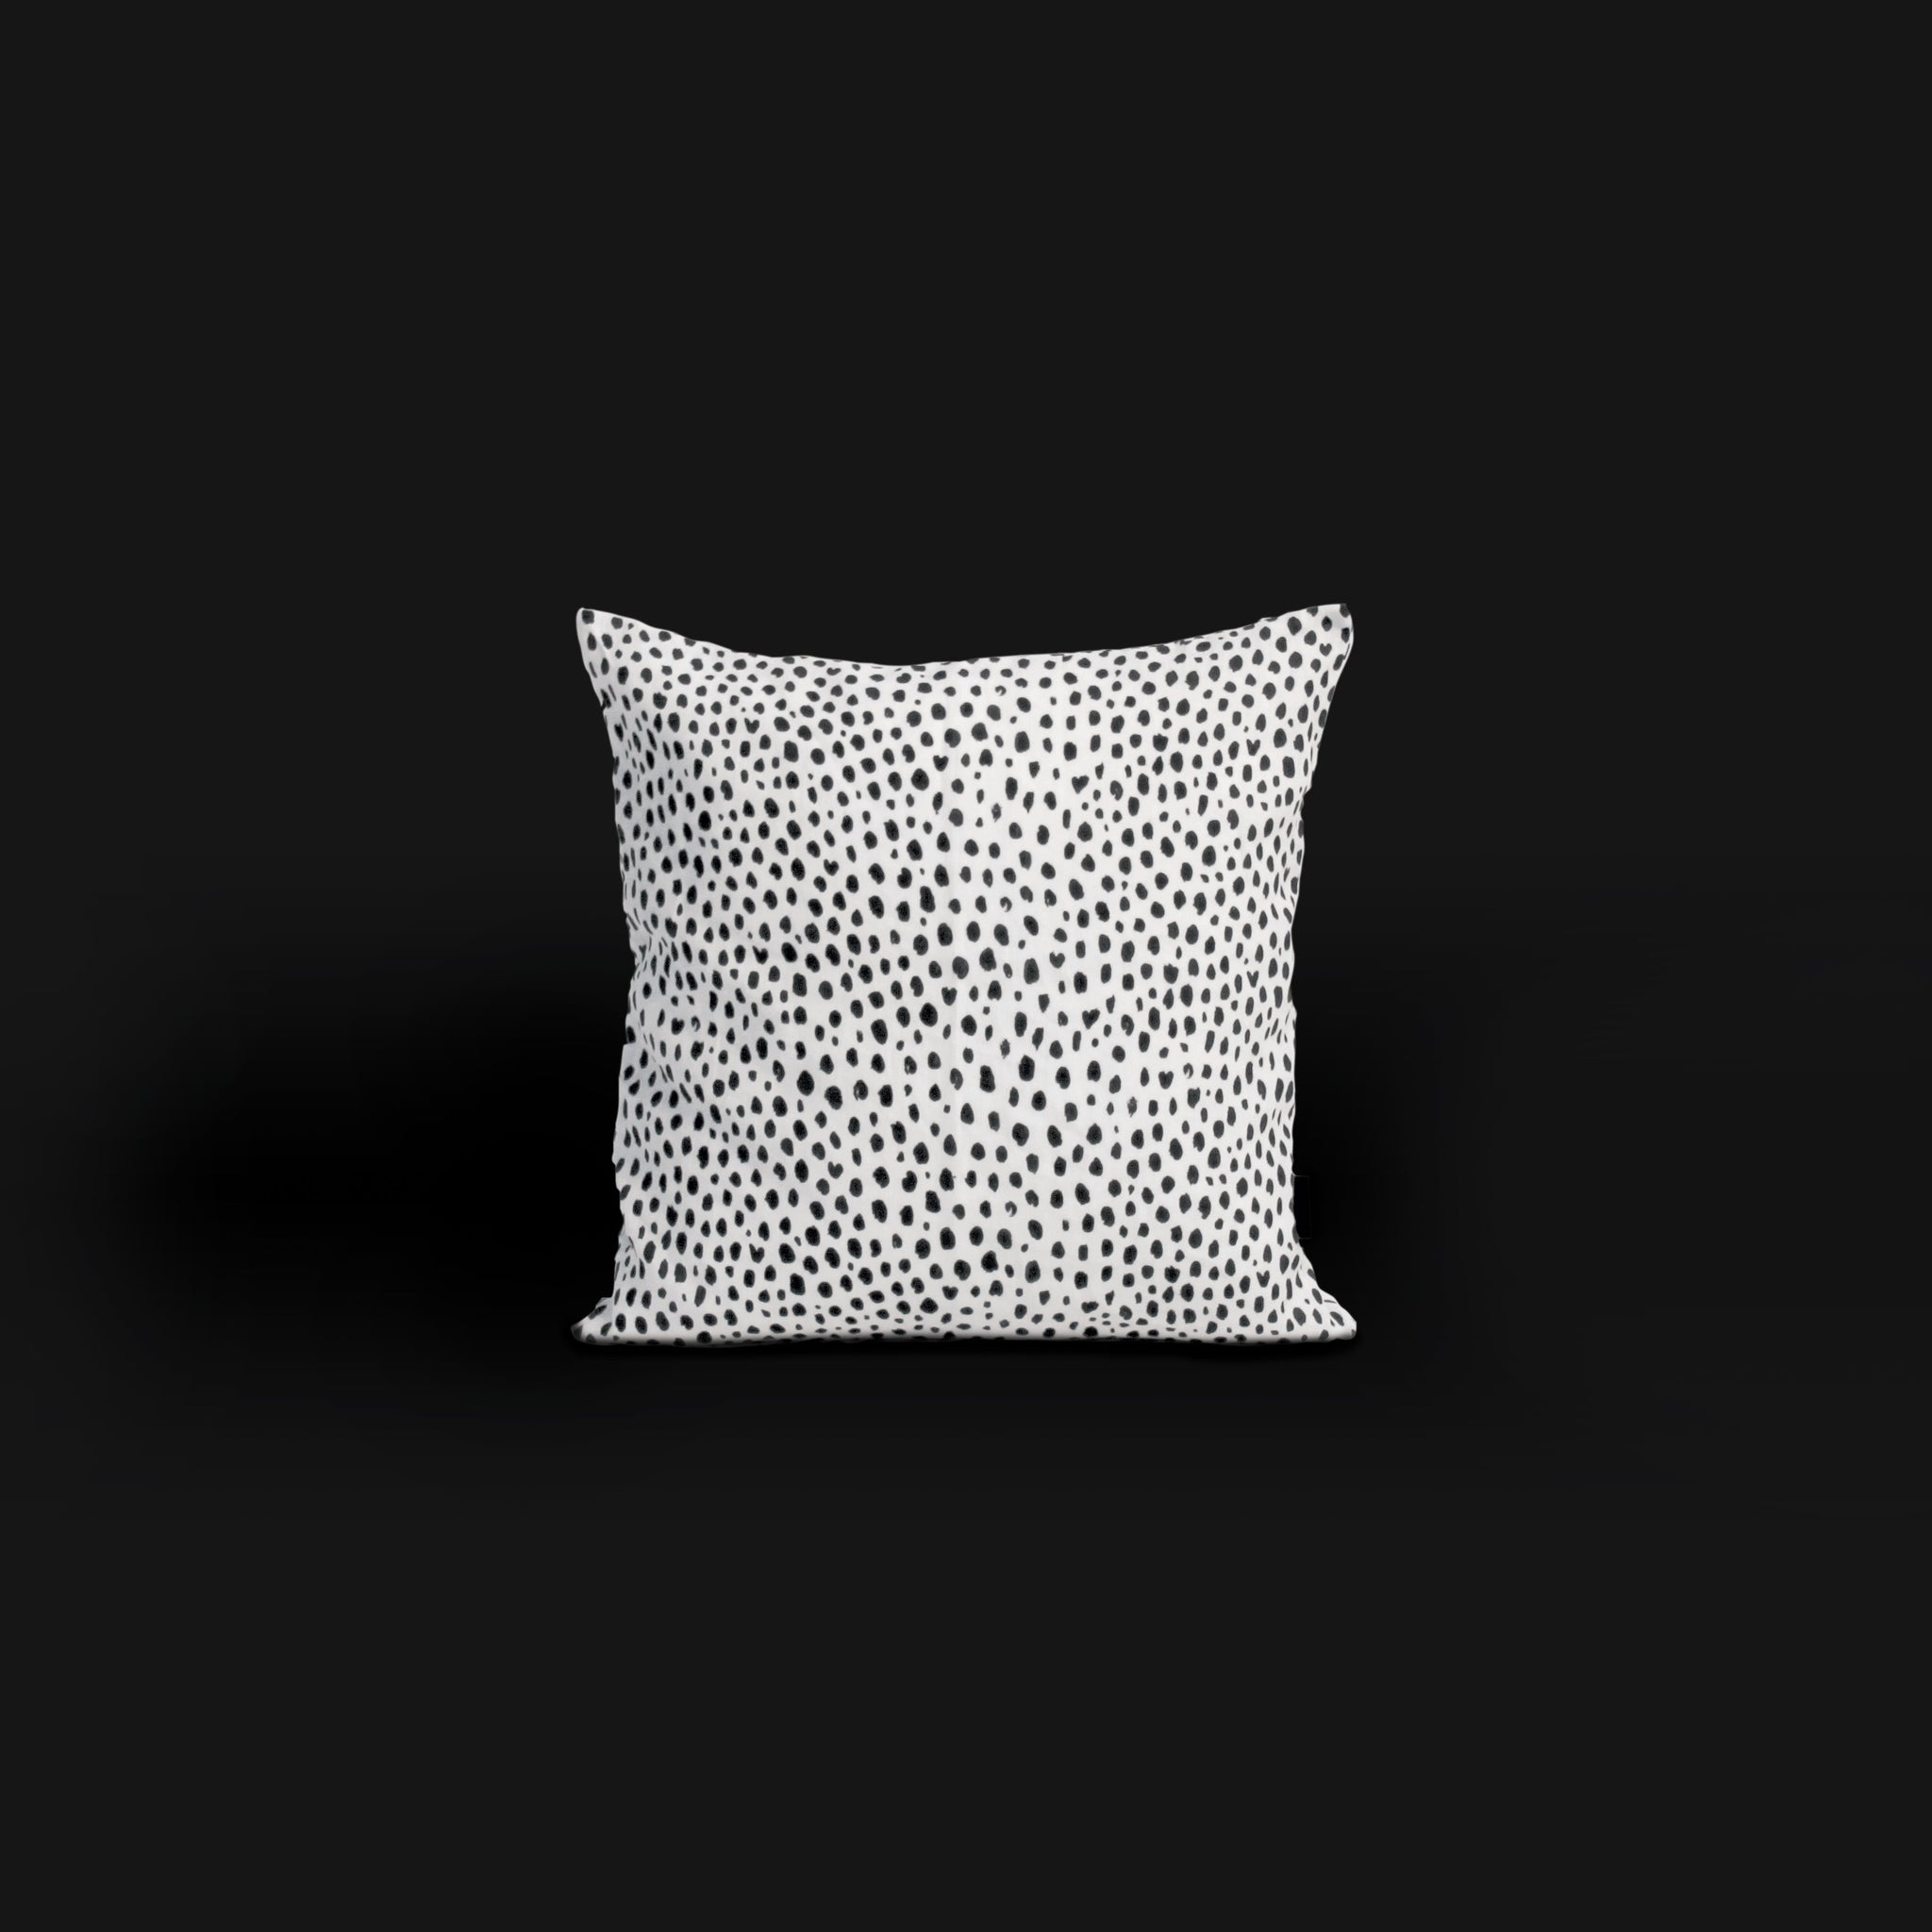 Black and white spot animal print cushion in 100% printed linen